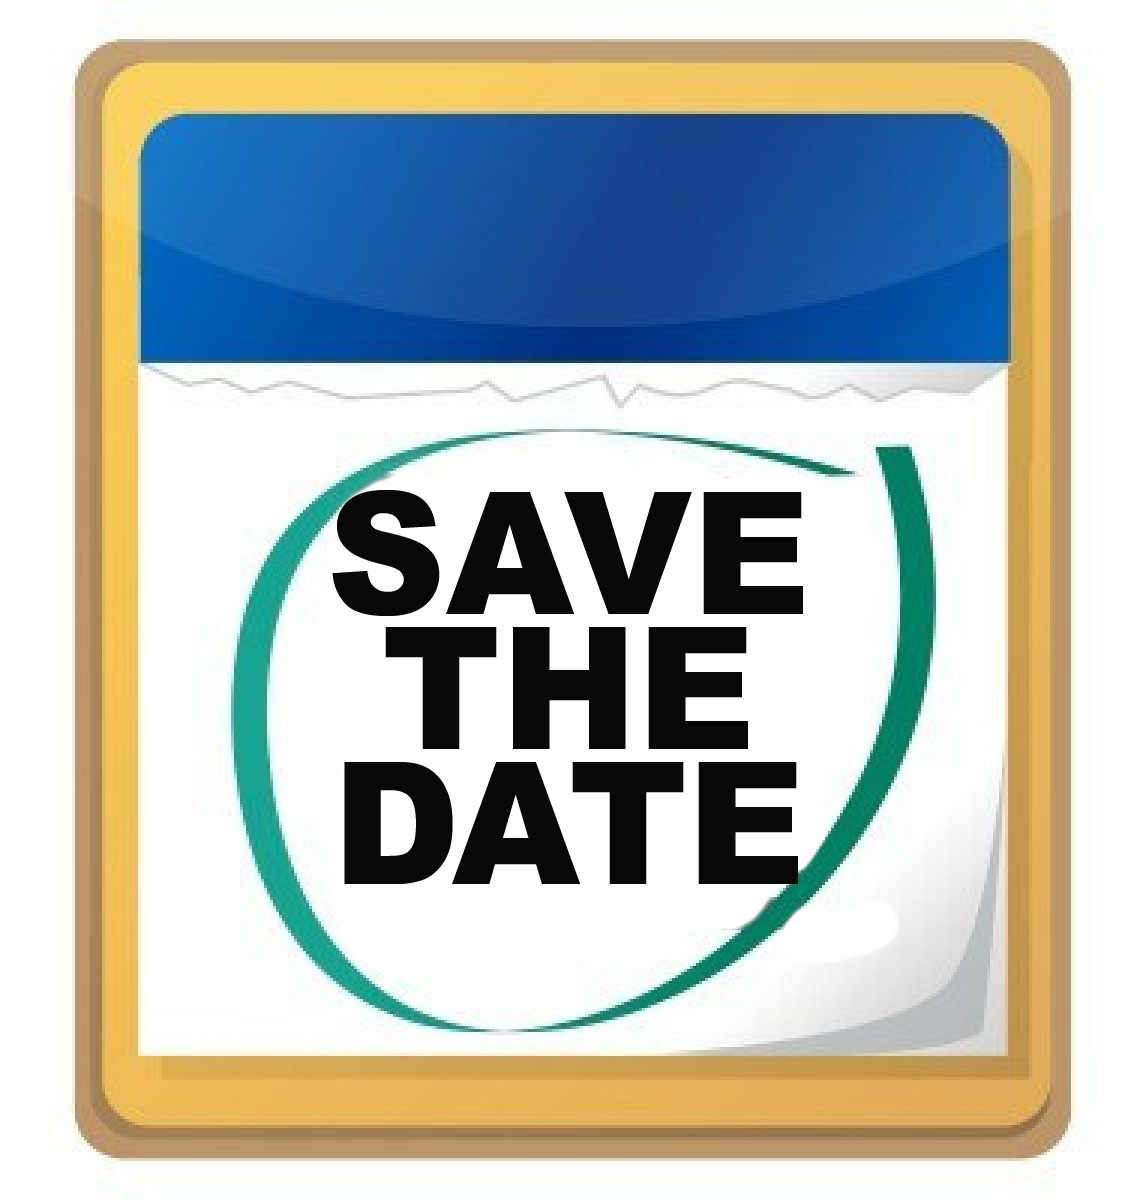 Save The Date Clipart - ClipArt Best